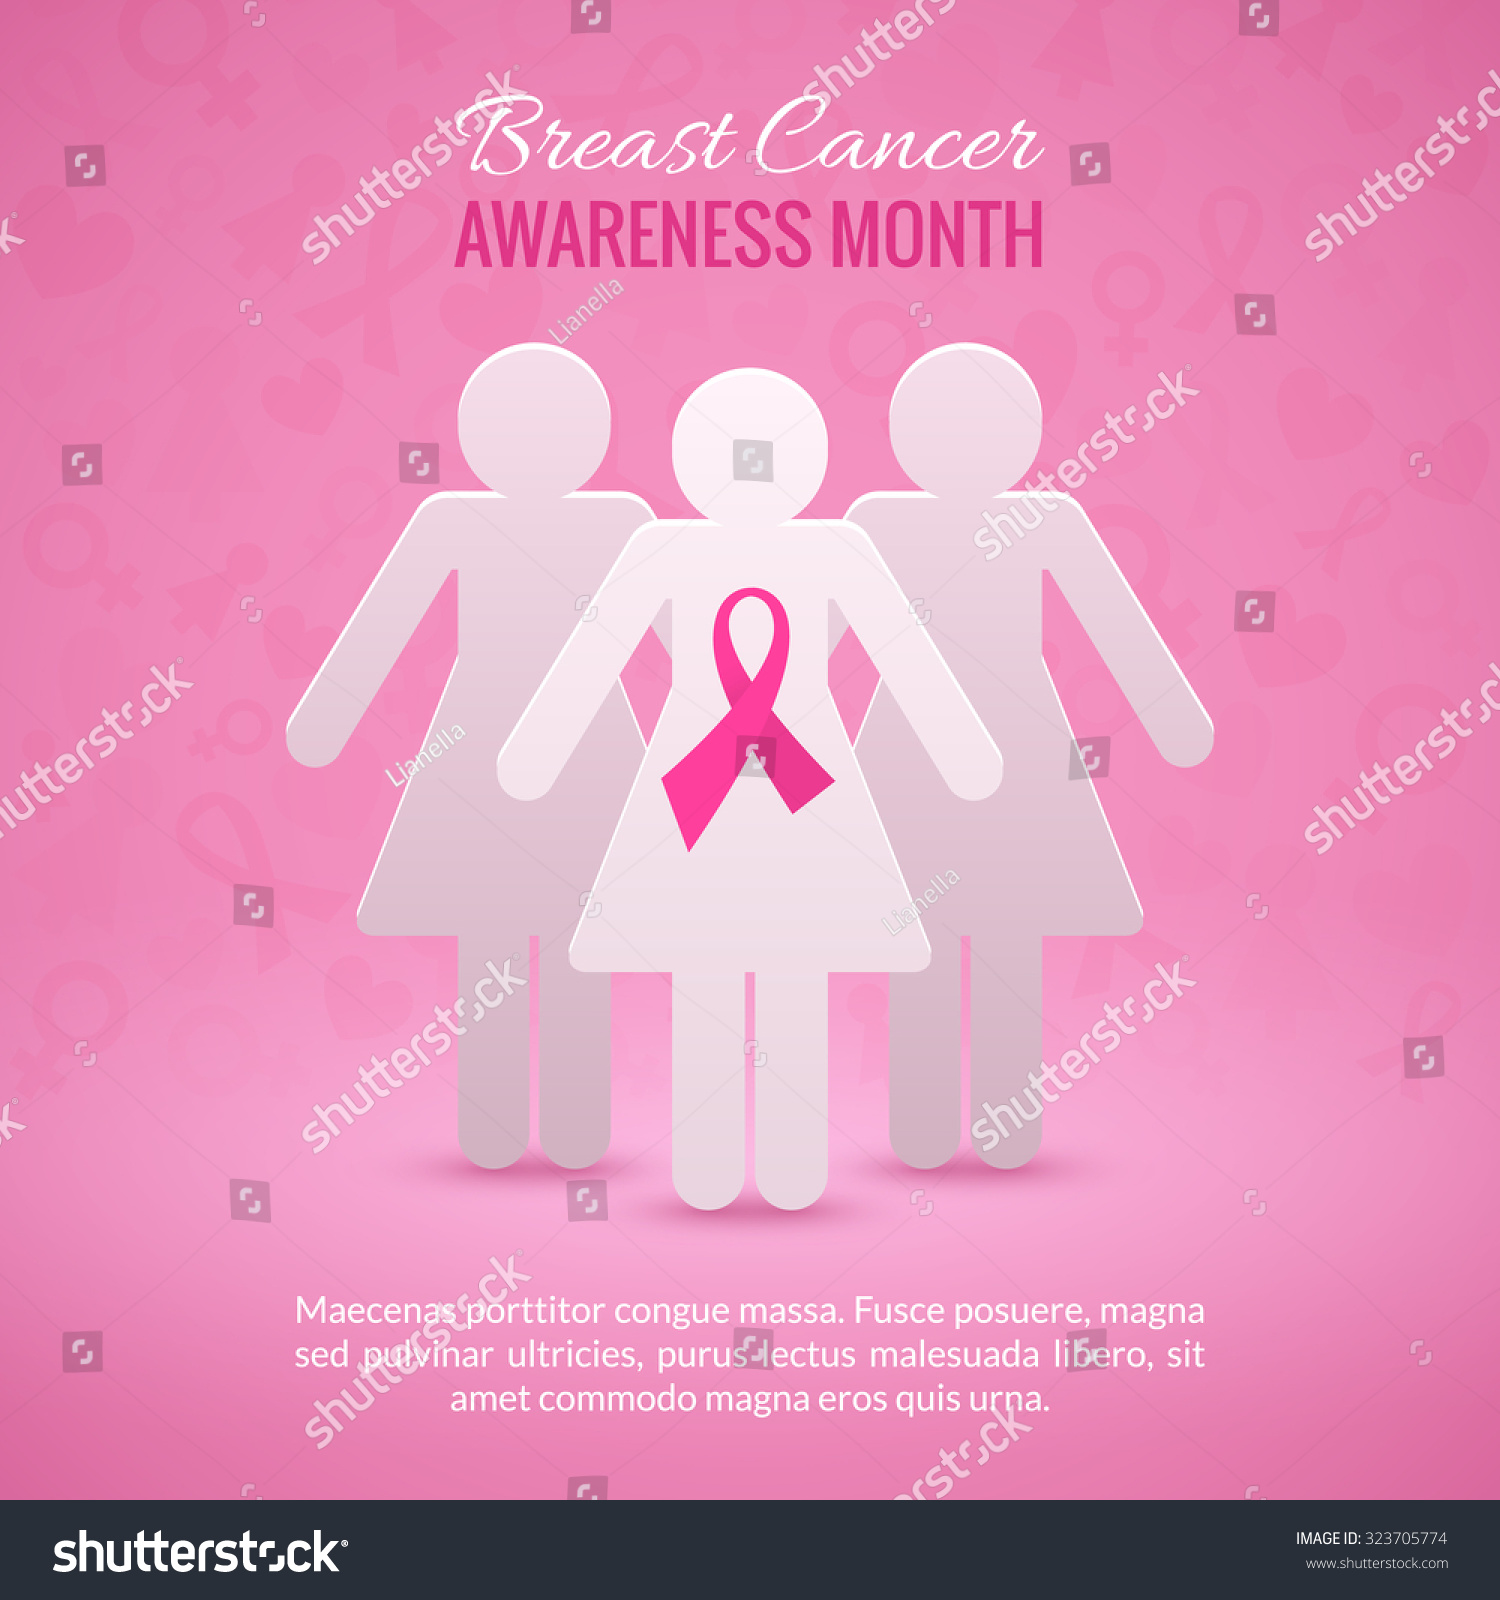 019 Research Paper Stock Vector Breast Cancer October Awareness Month Campaign Background With Girl Silhouettes And Pink Phenomenal Example Full